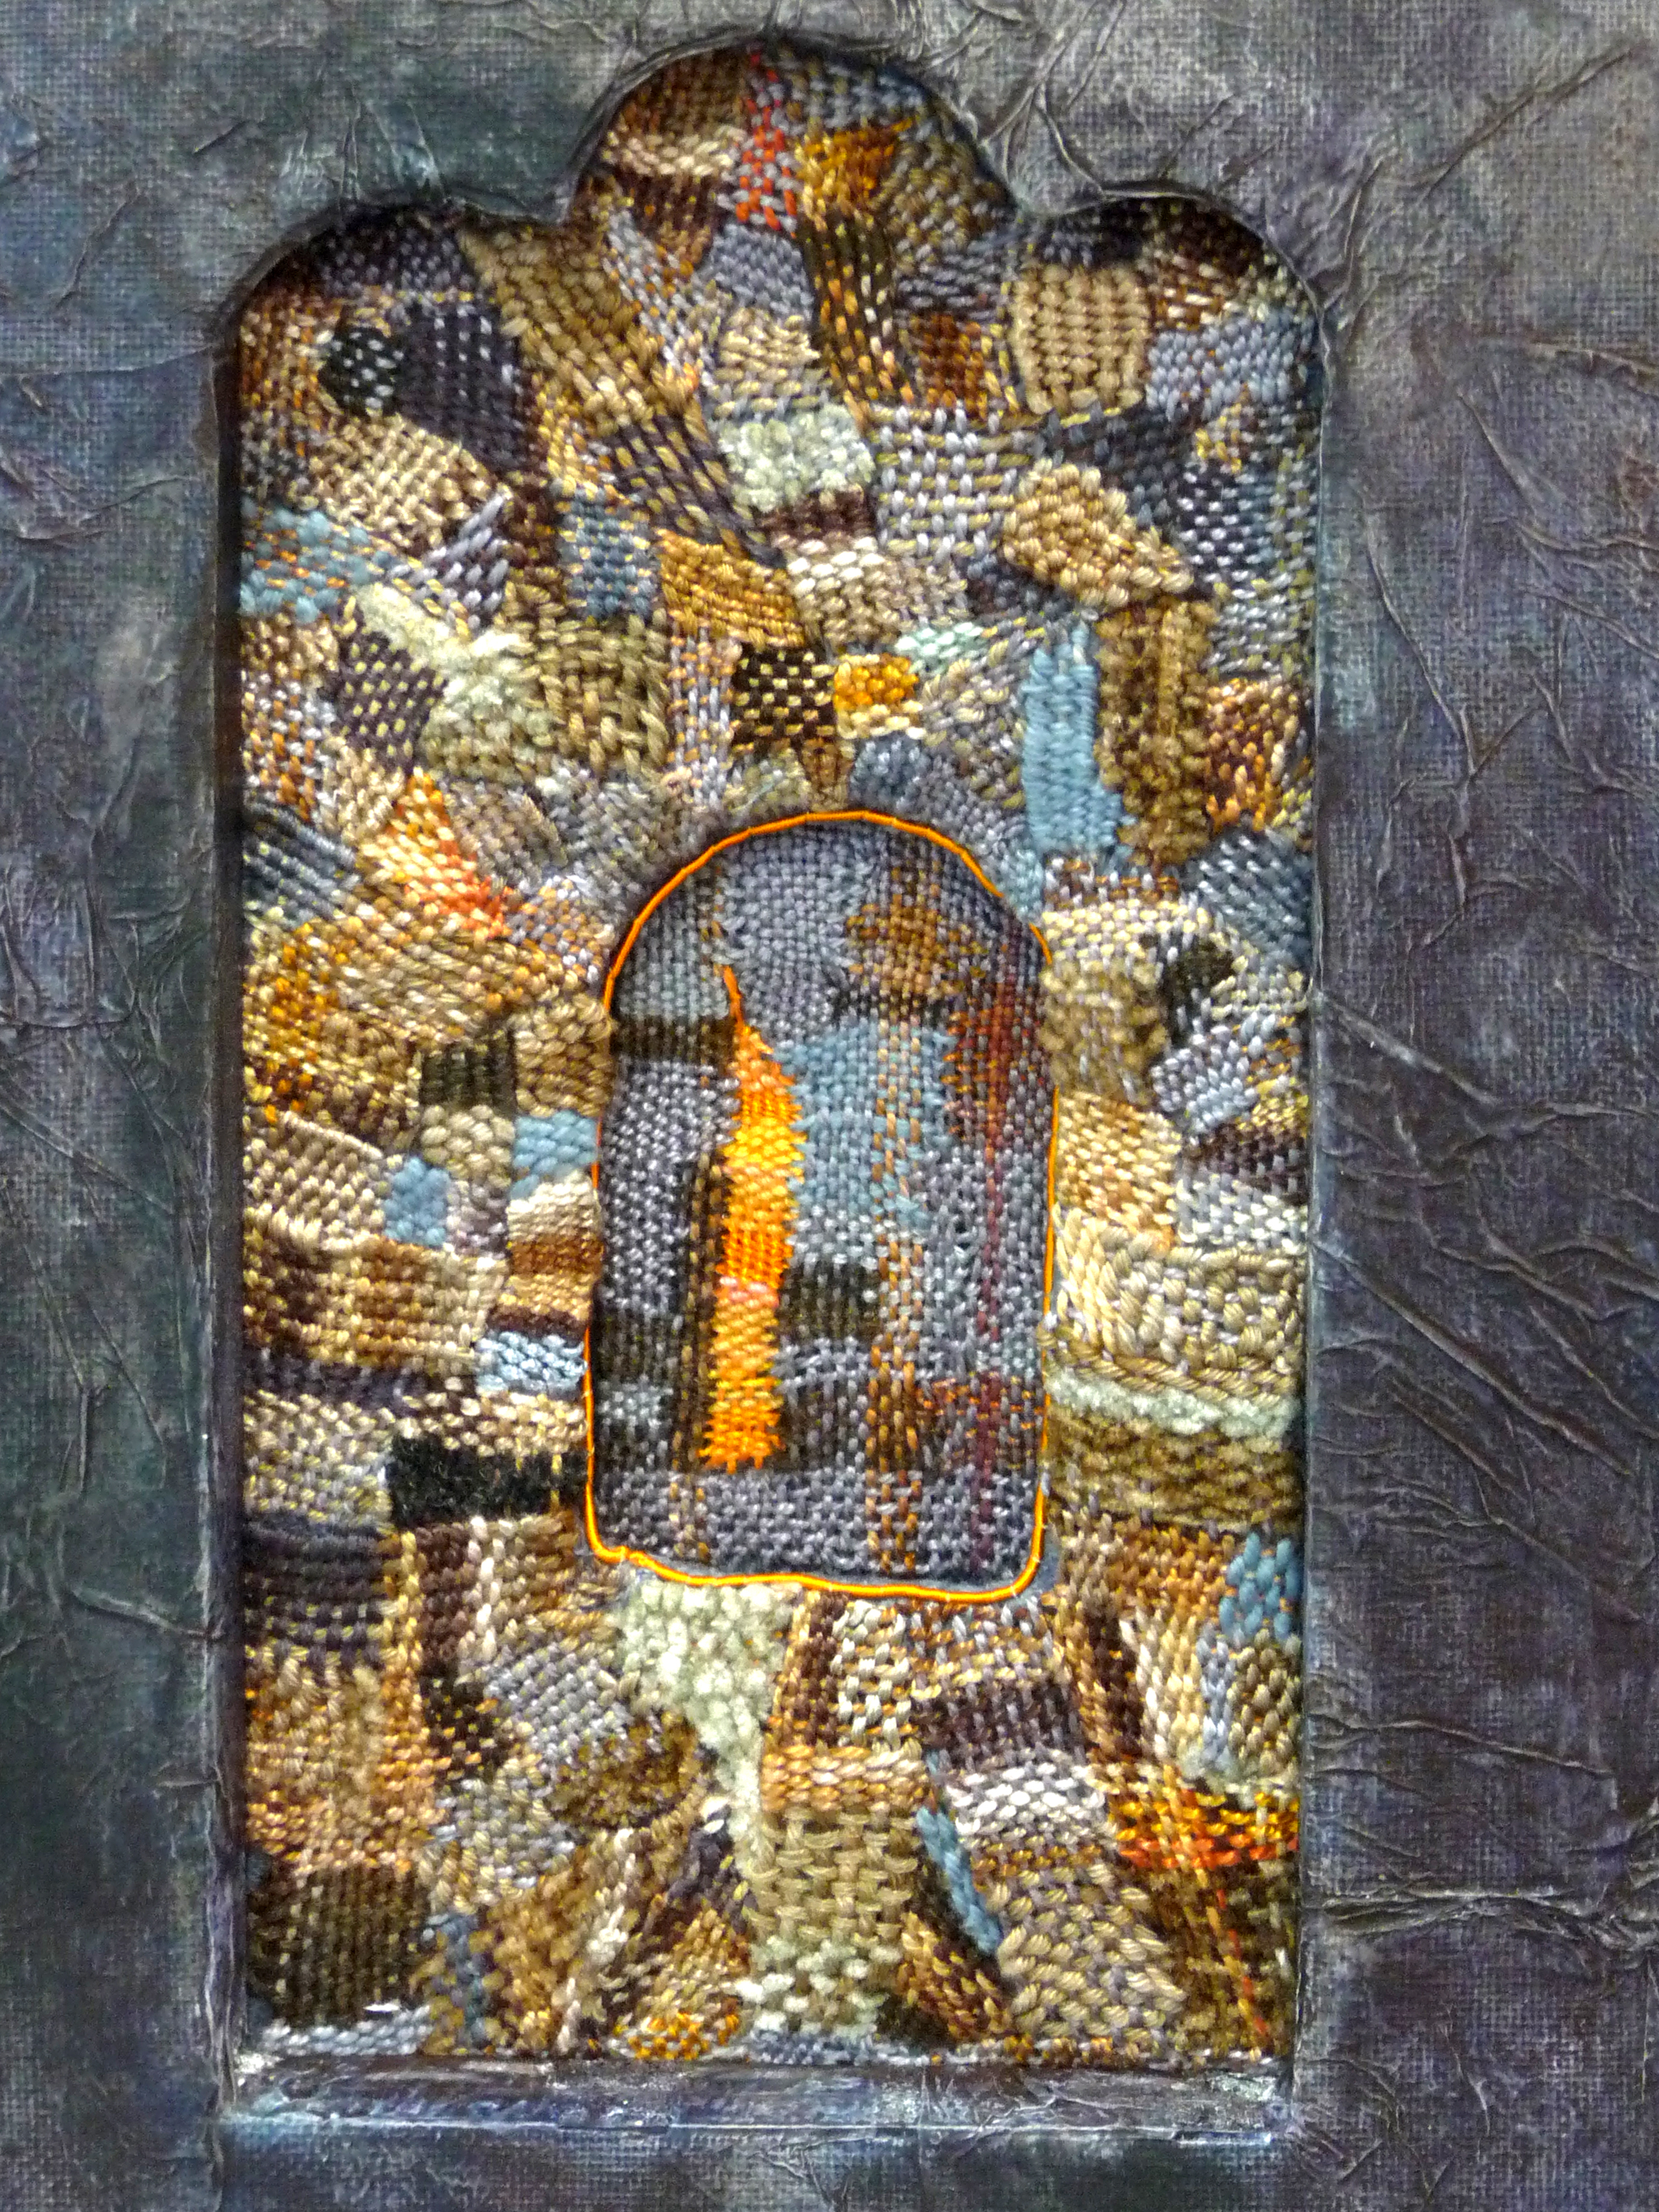 HAFODUNOS by Alison Corfield, hand embroidery with hand dyed threads